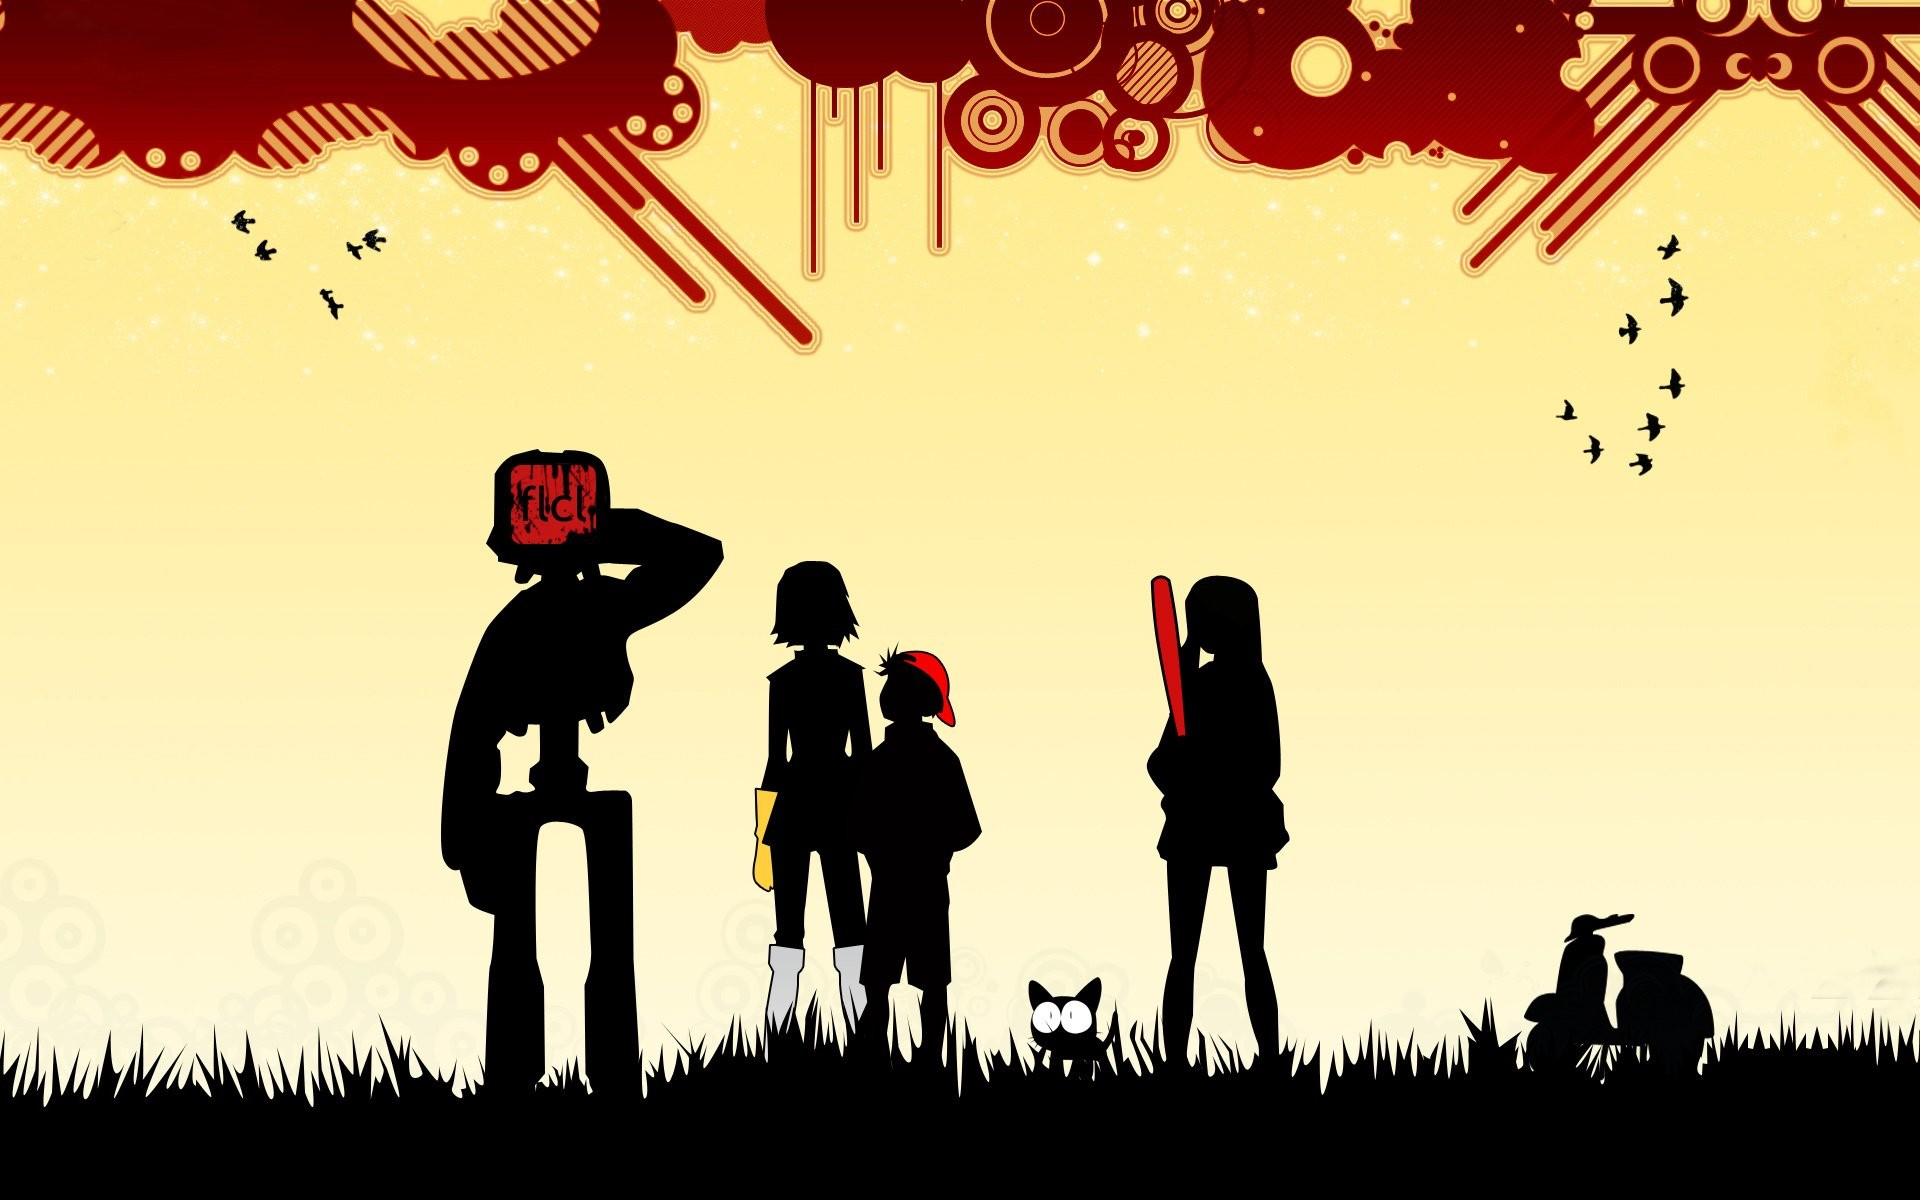 1920x1200 HD Wallpaper | Background Image ID:120460.  Anime FLCL